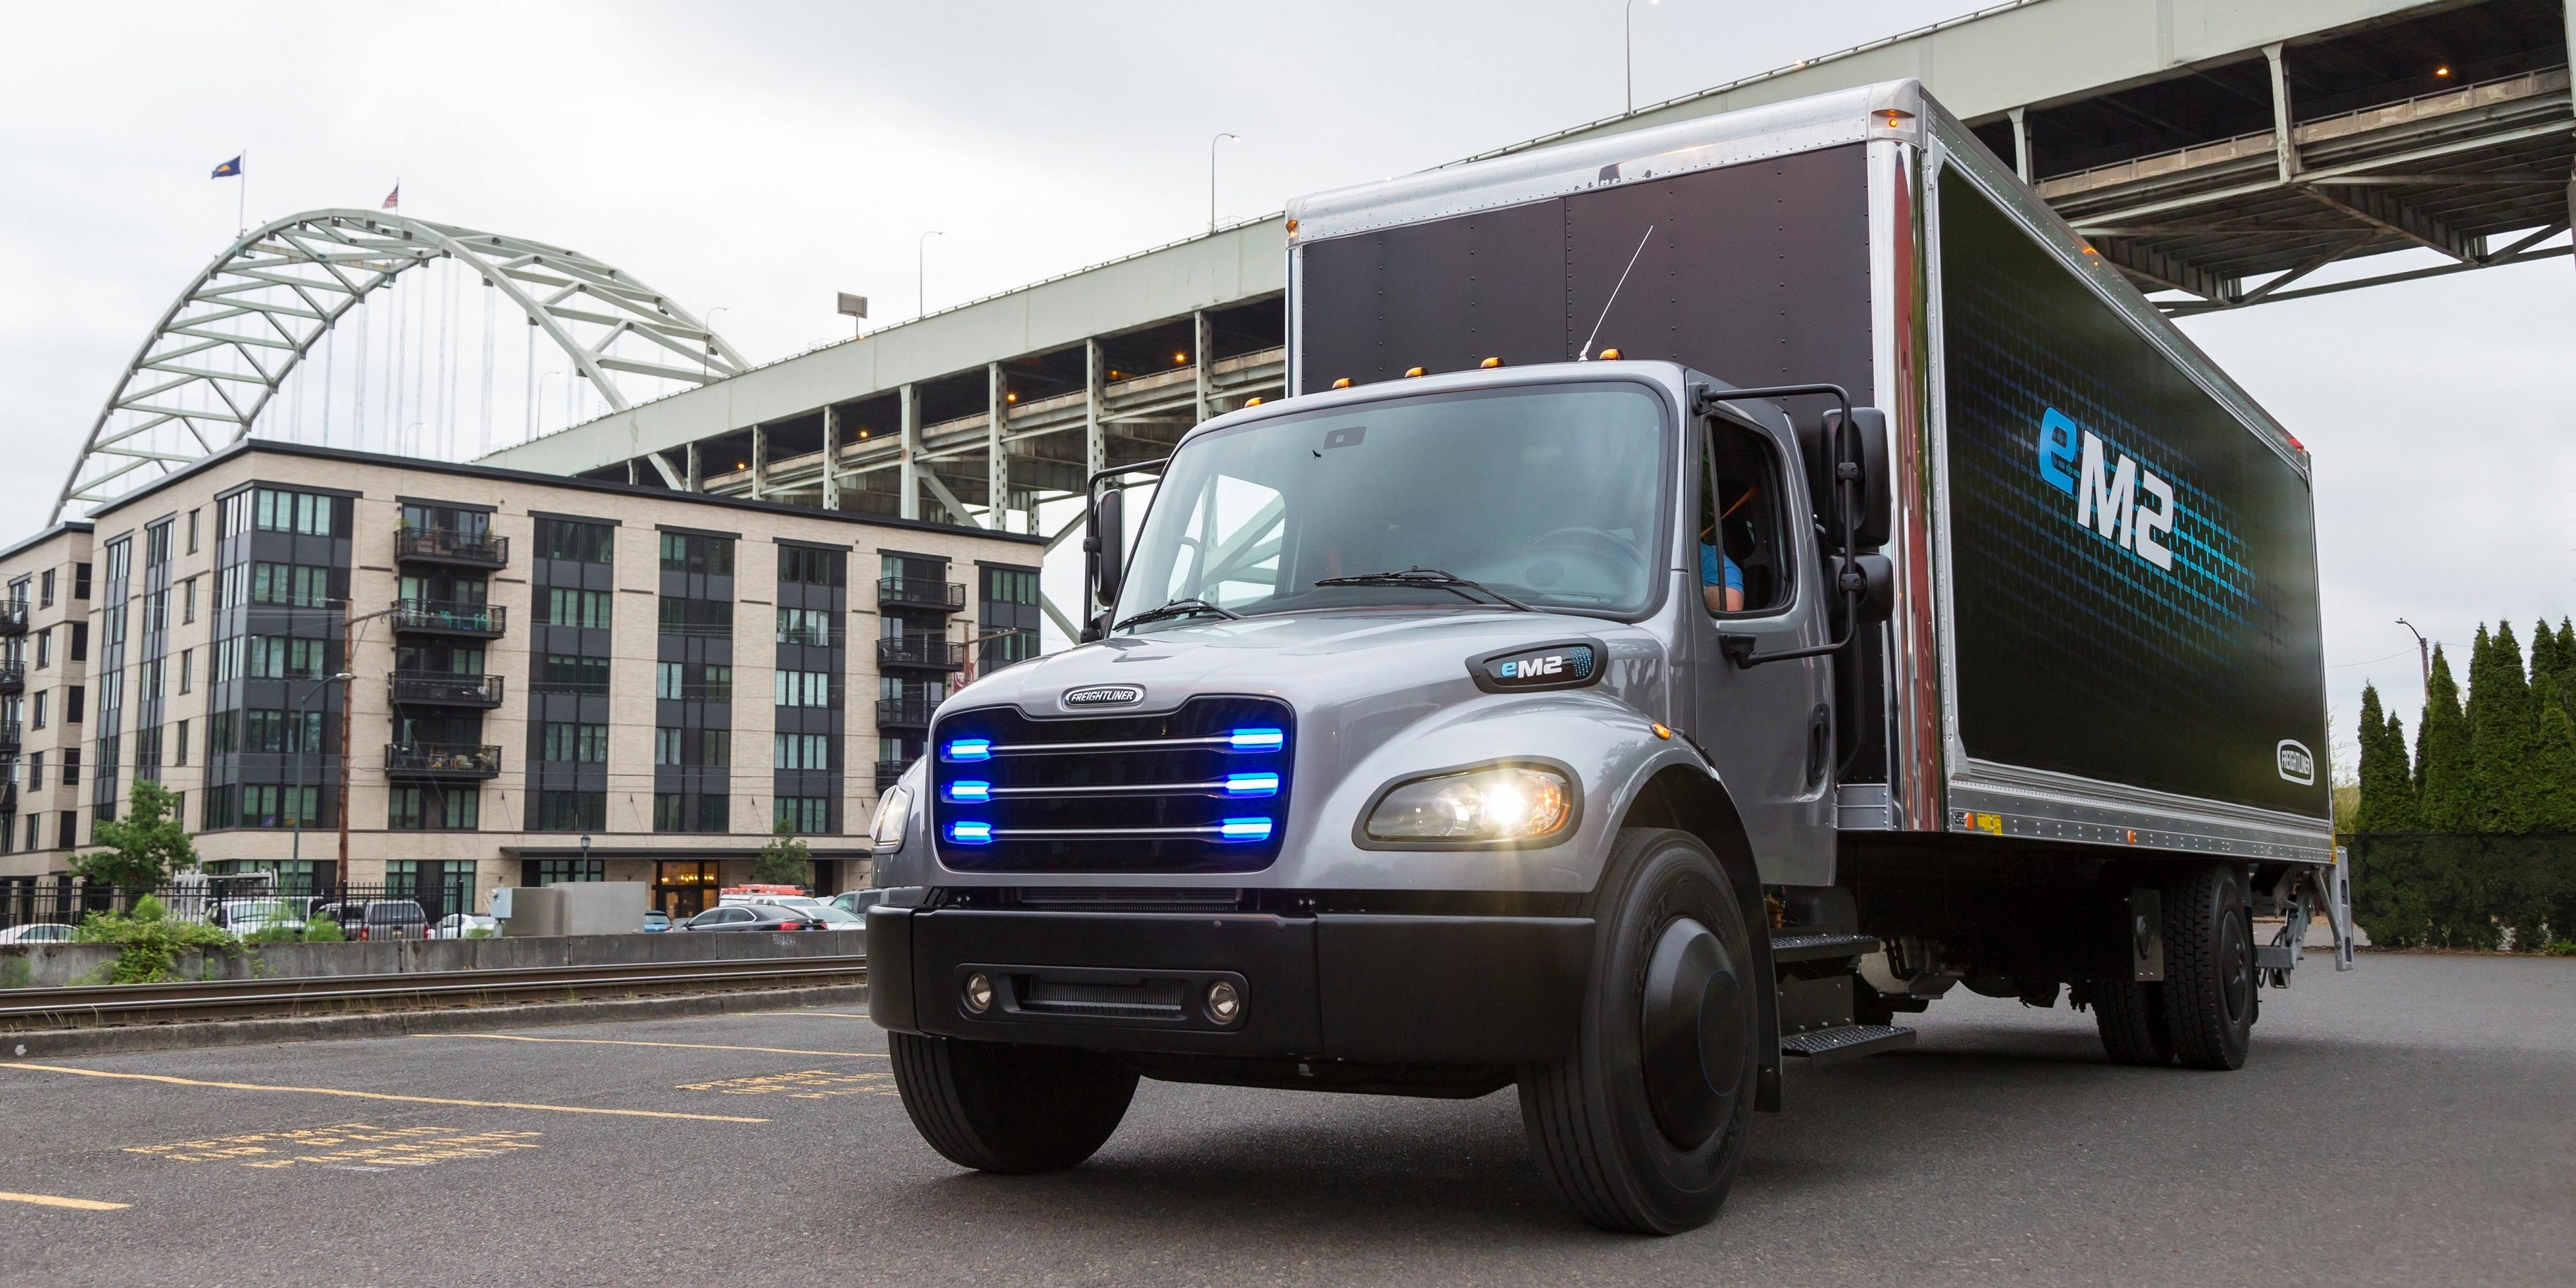 Daimler is working on electric truck charging rate 'up to 3MW'